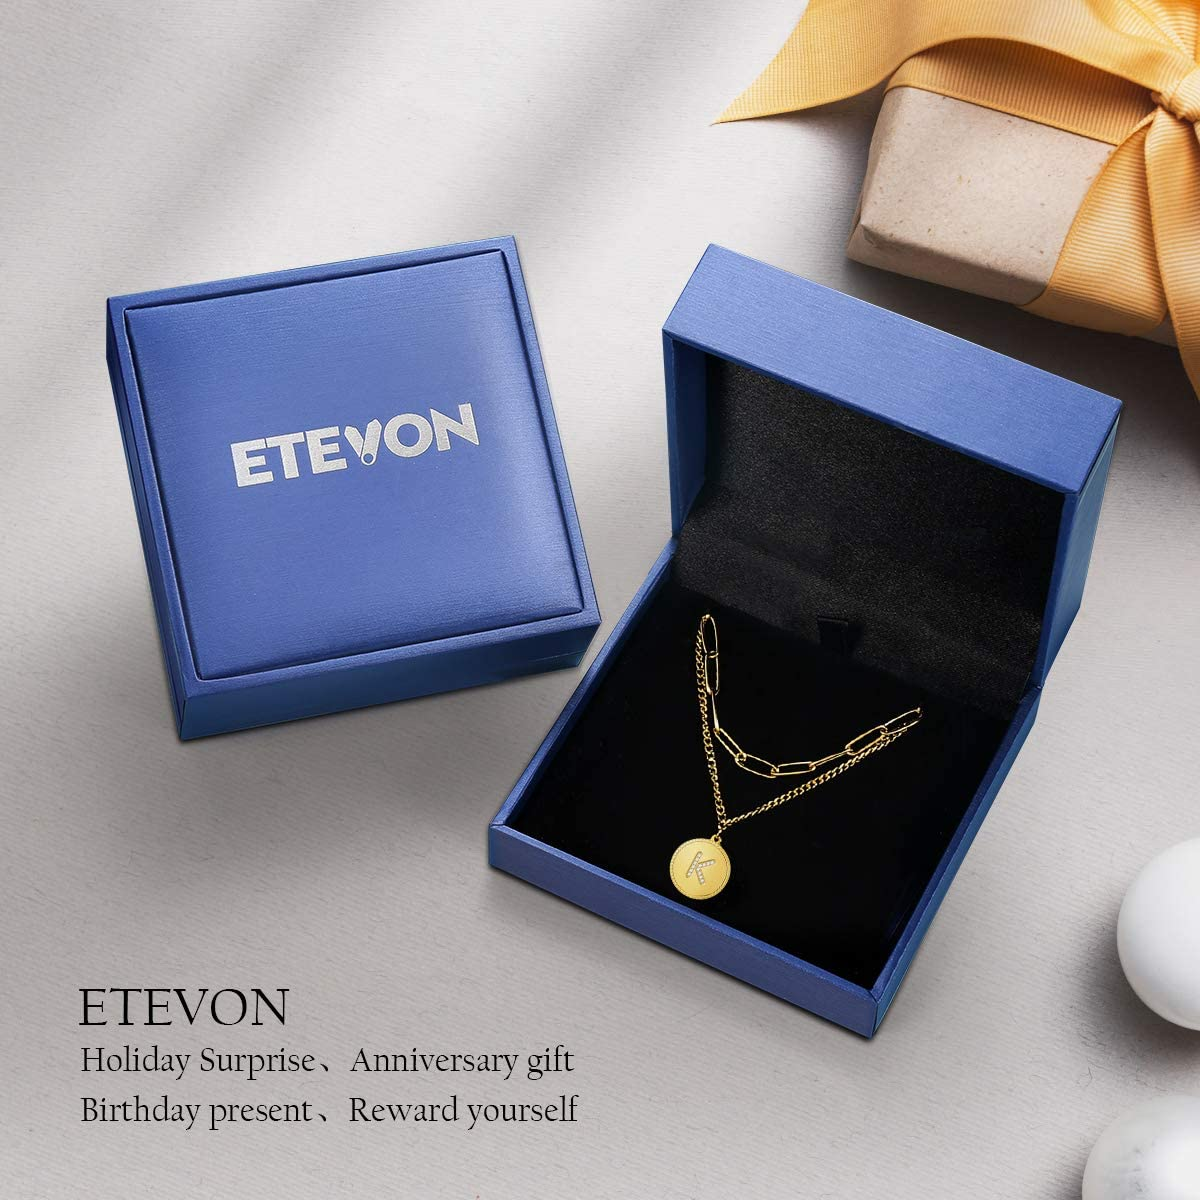 ETEVON Womens Gold Initial Anklet Bracelet Double Layer Foot Chain Adjustable Ankle Jewelry Gifts with Dainty Letter for Teen Girls Valentines Day